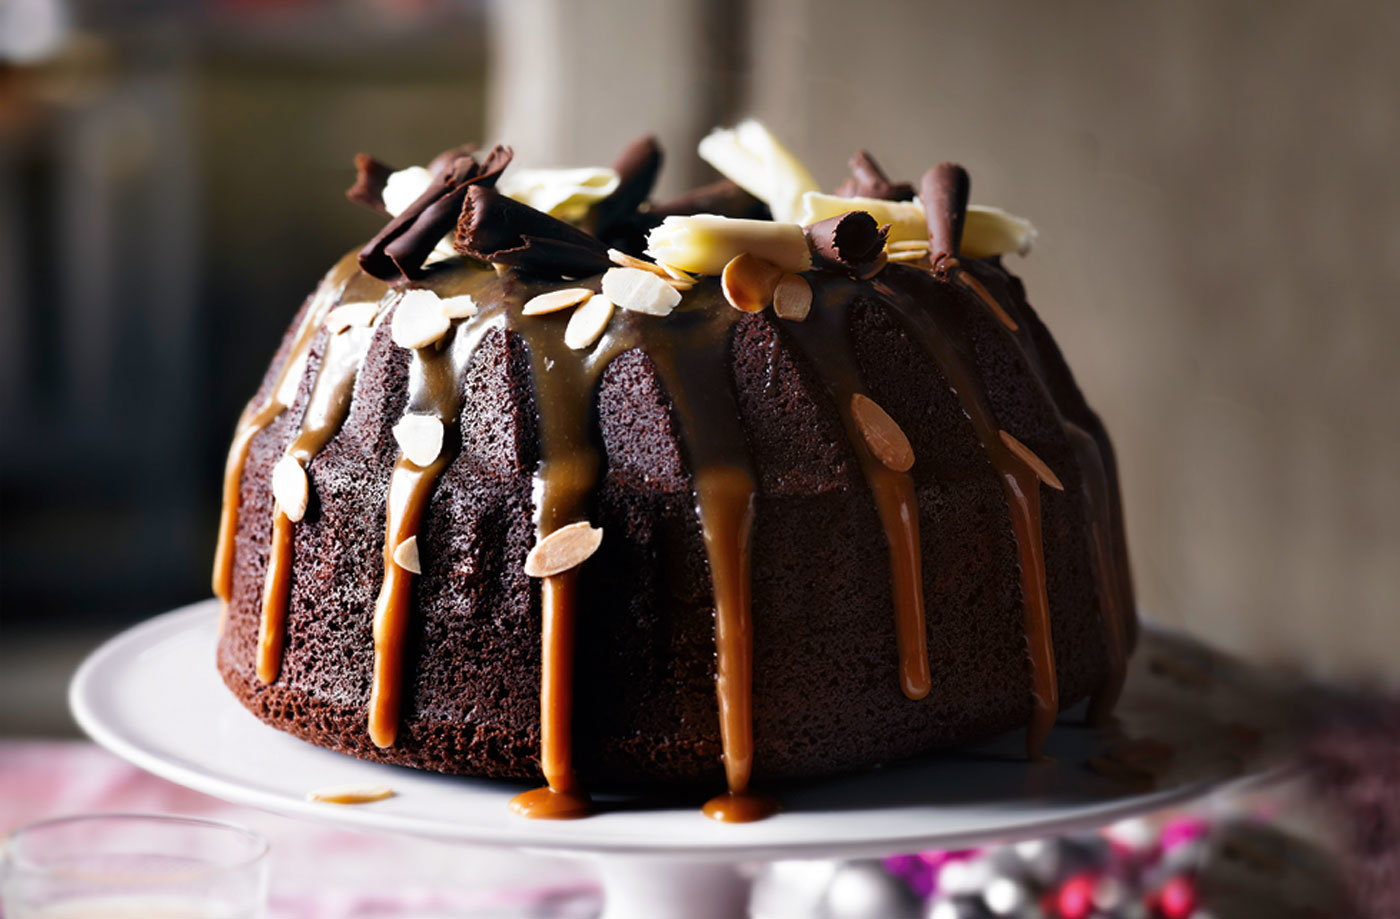 Chocolate Cake Recipe Uk Tesco: Chocolate Bundt Cake